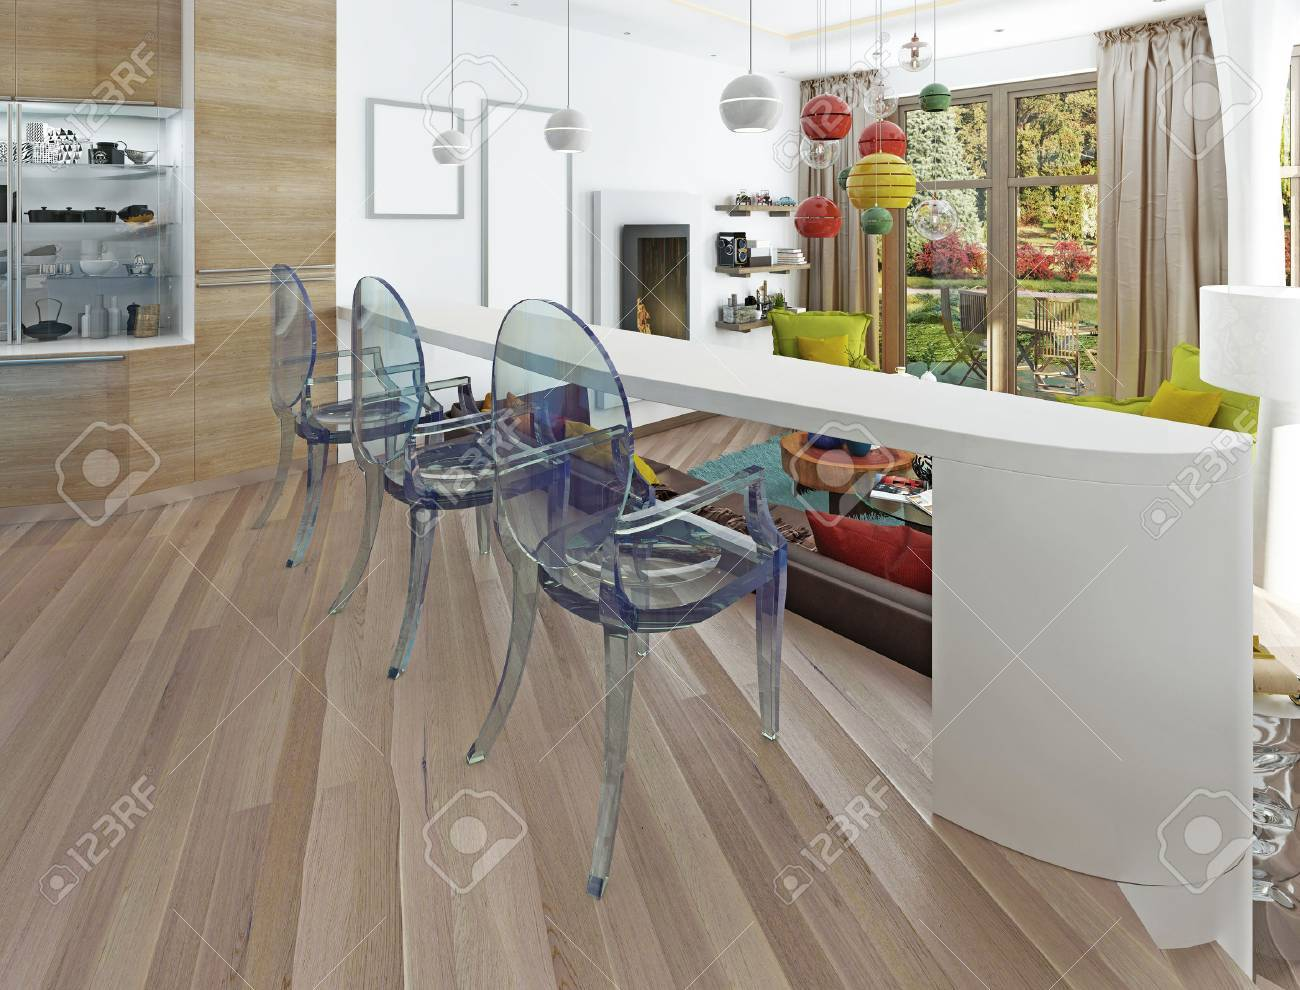 Modern White Bar With Three Transparent Chairs The Counter In Kitchen Dining